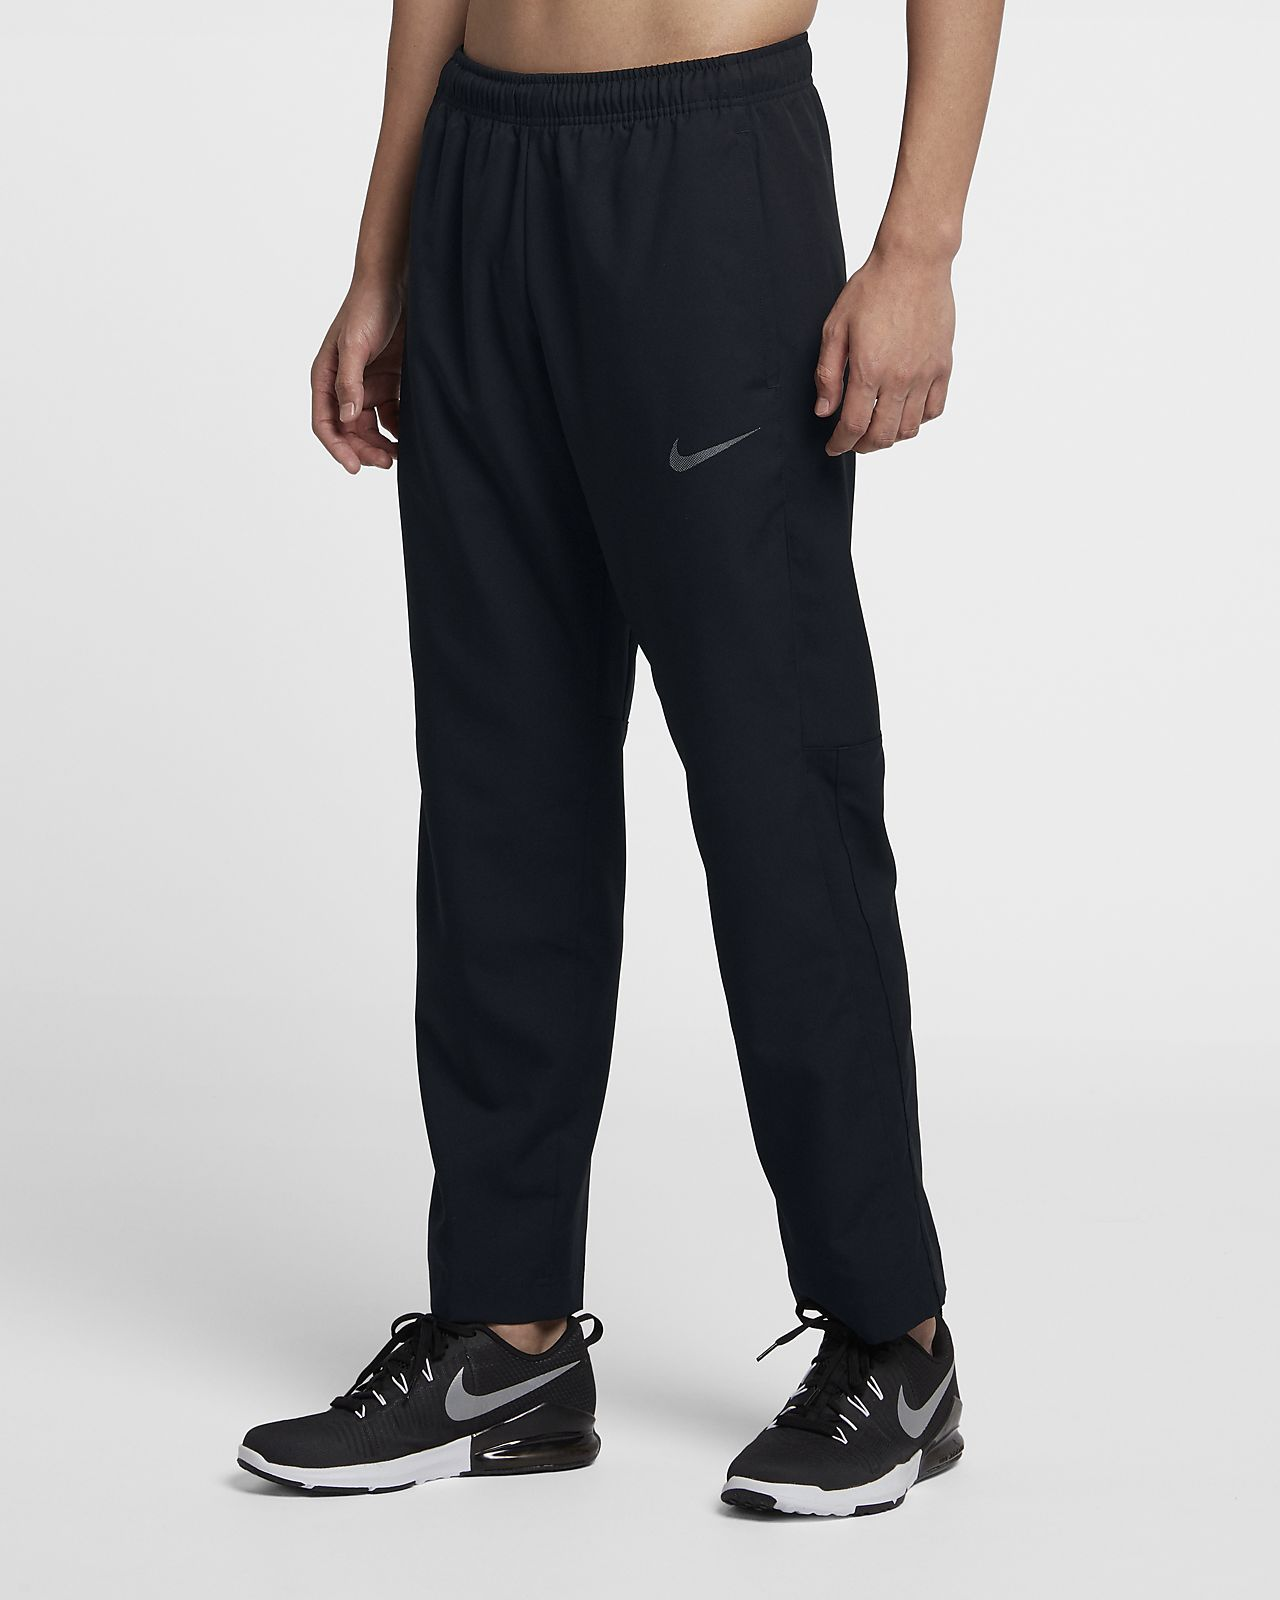 Nike Dri-FIT Men's Training Trousers